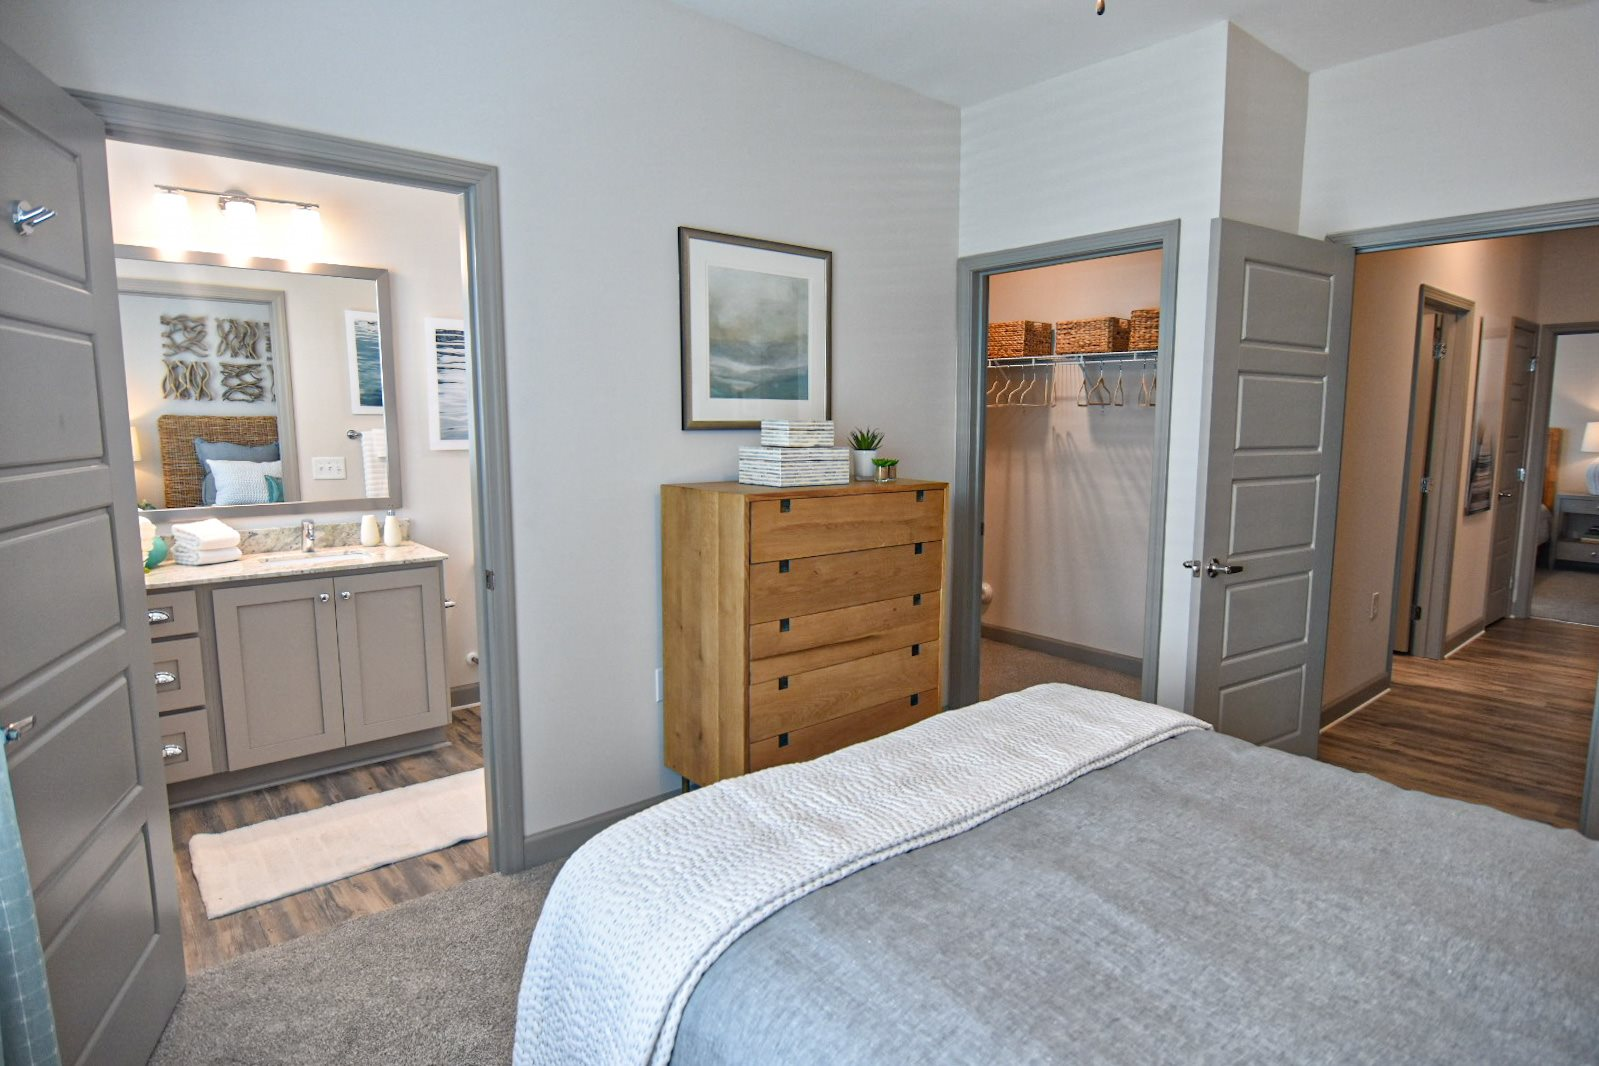 Modern bedroom with private bathroom hawthorne at smith creek wilmington nc